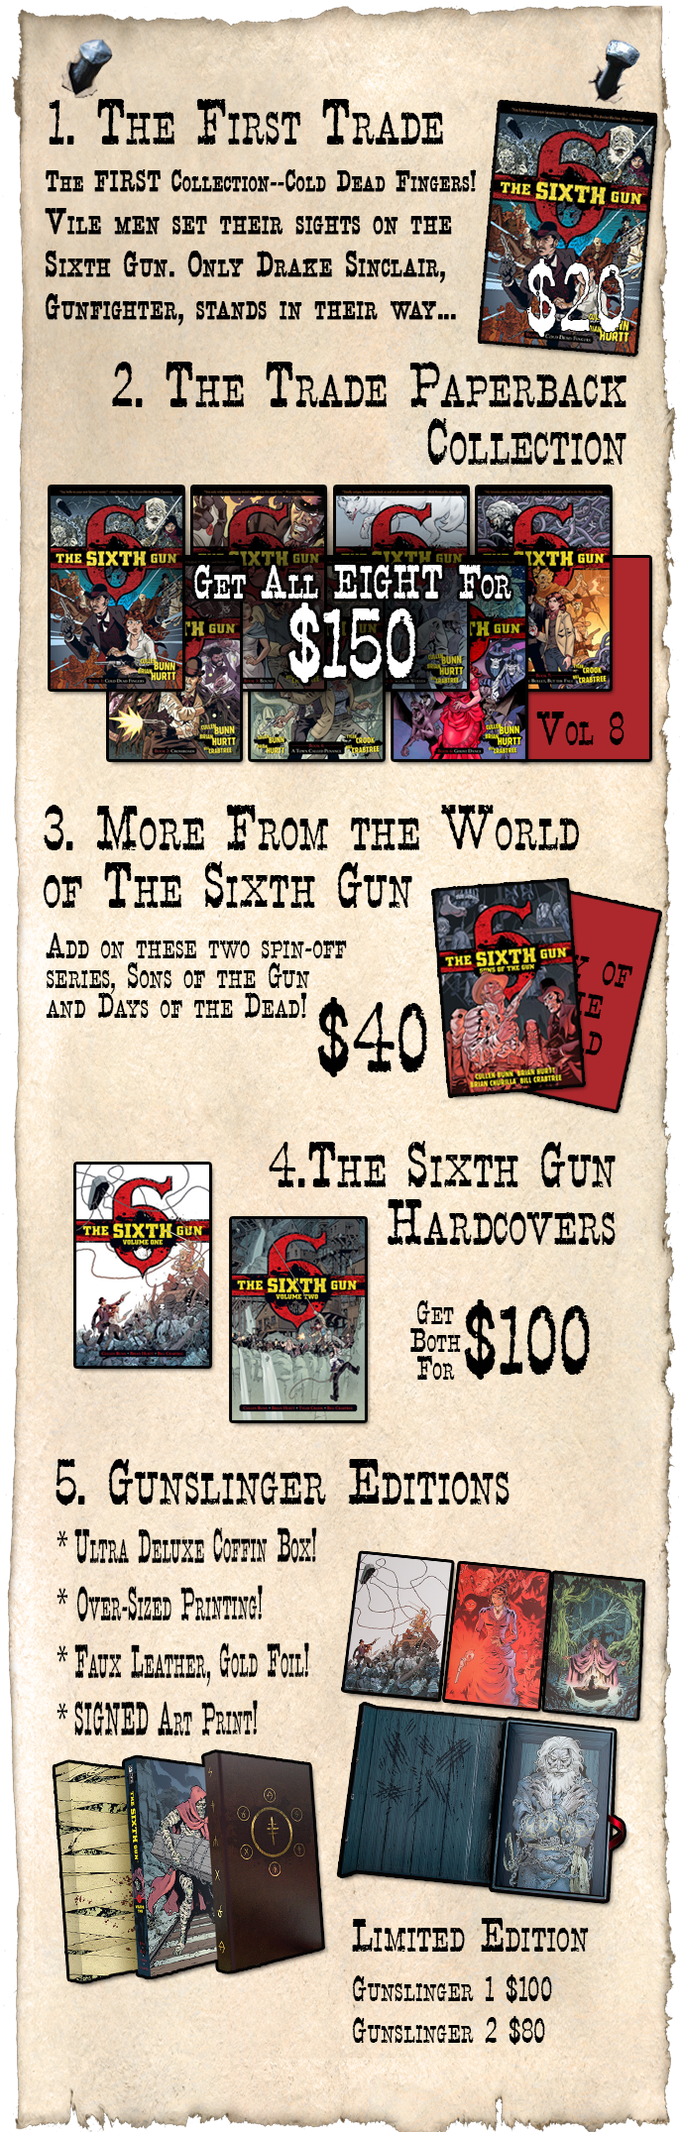 Save on Shipping by ordering the original Sixth Gun graphic novels in regular or deluxe editions!